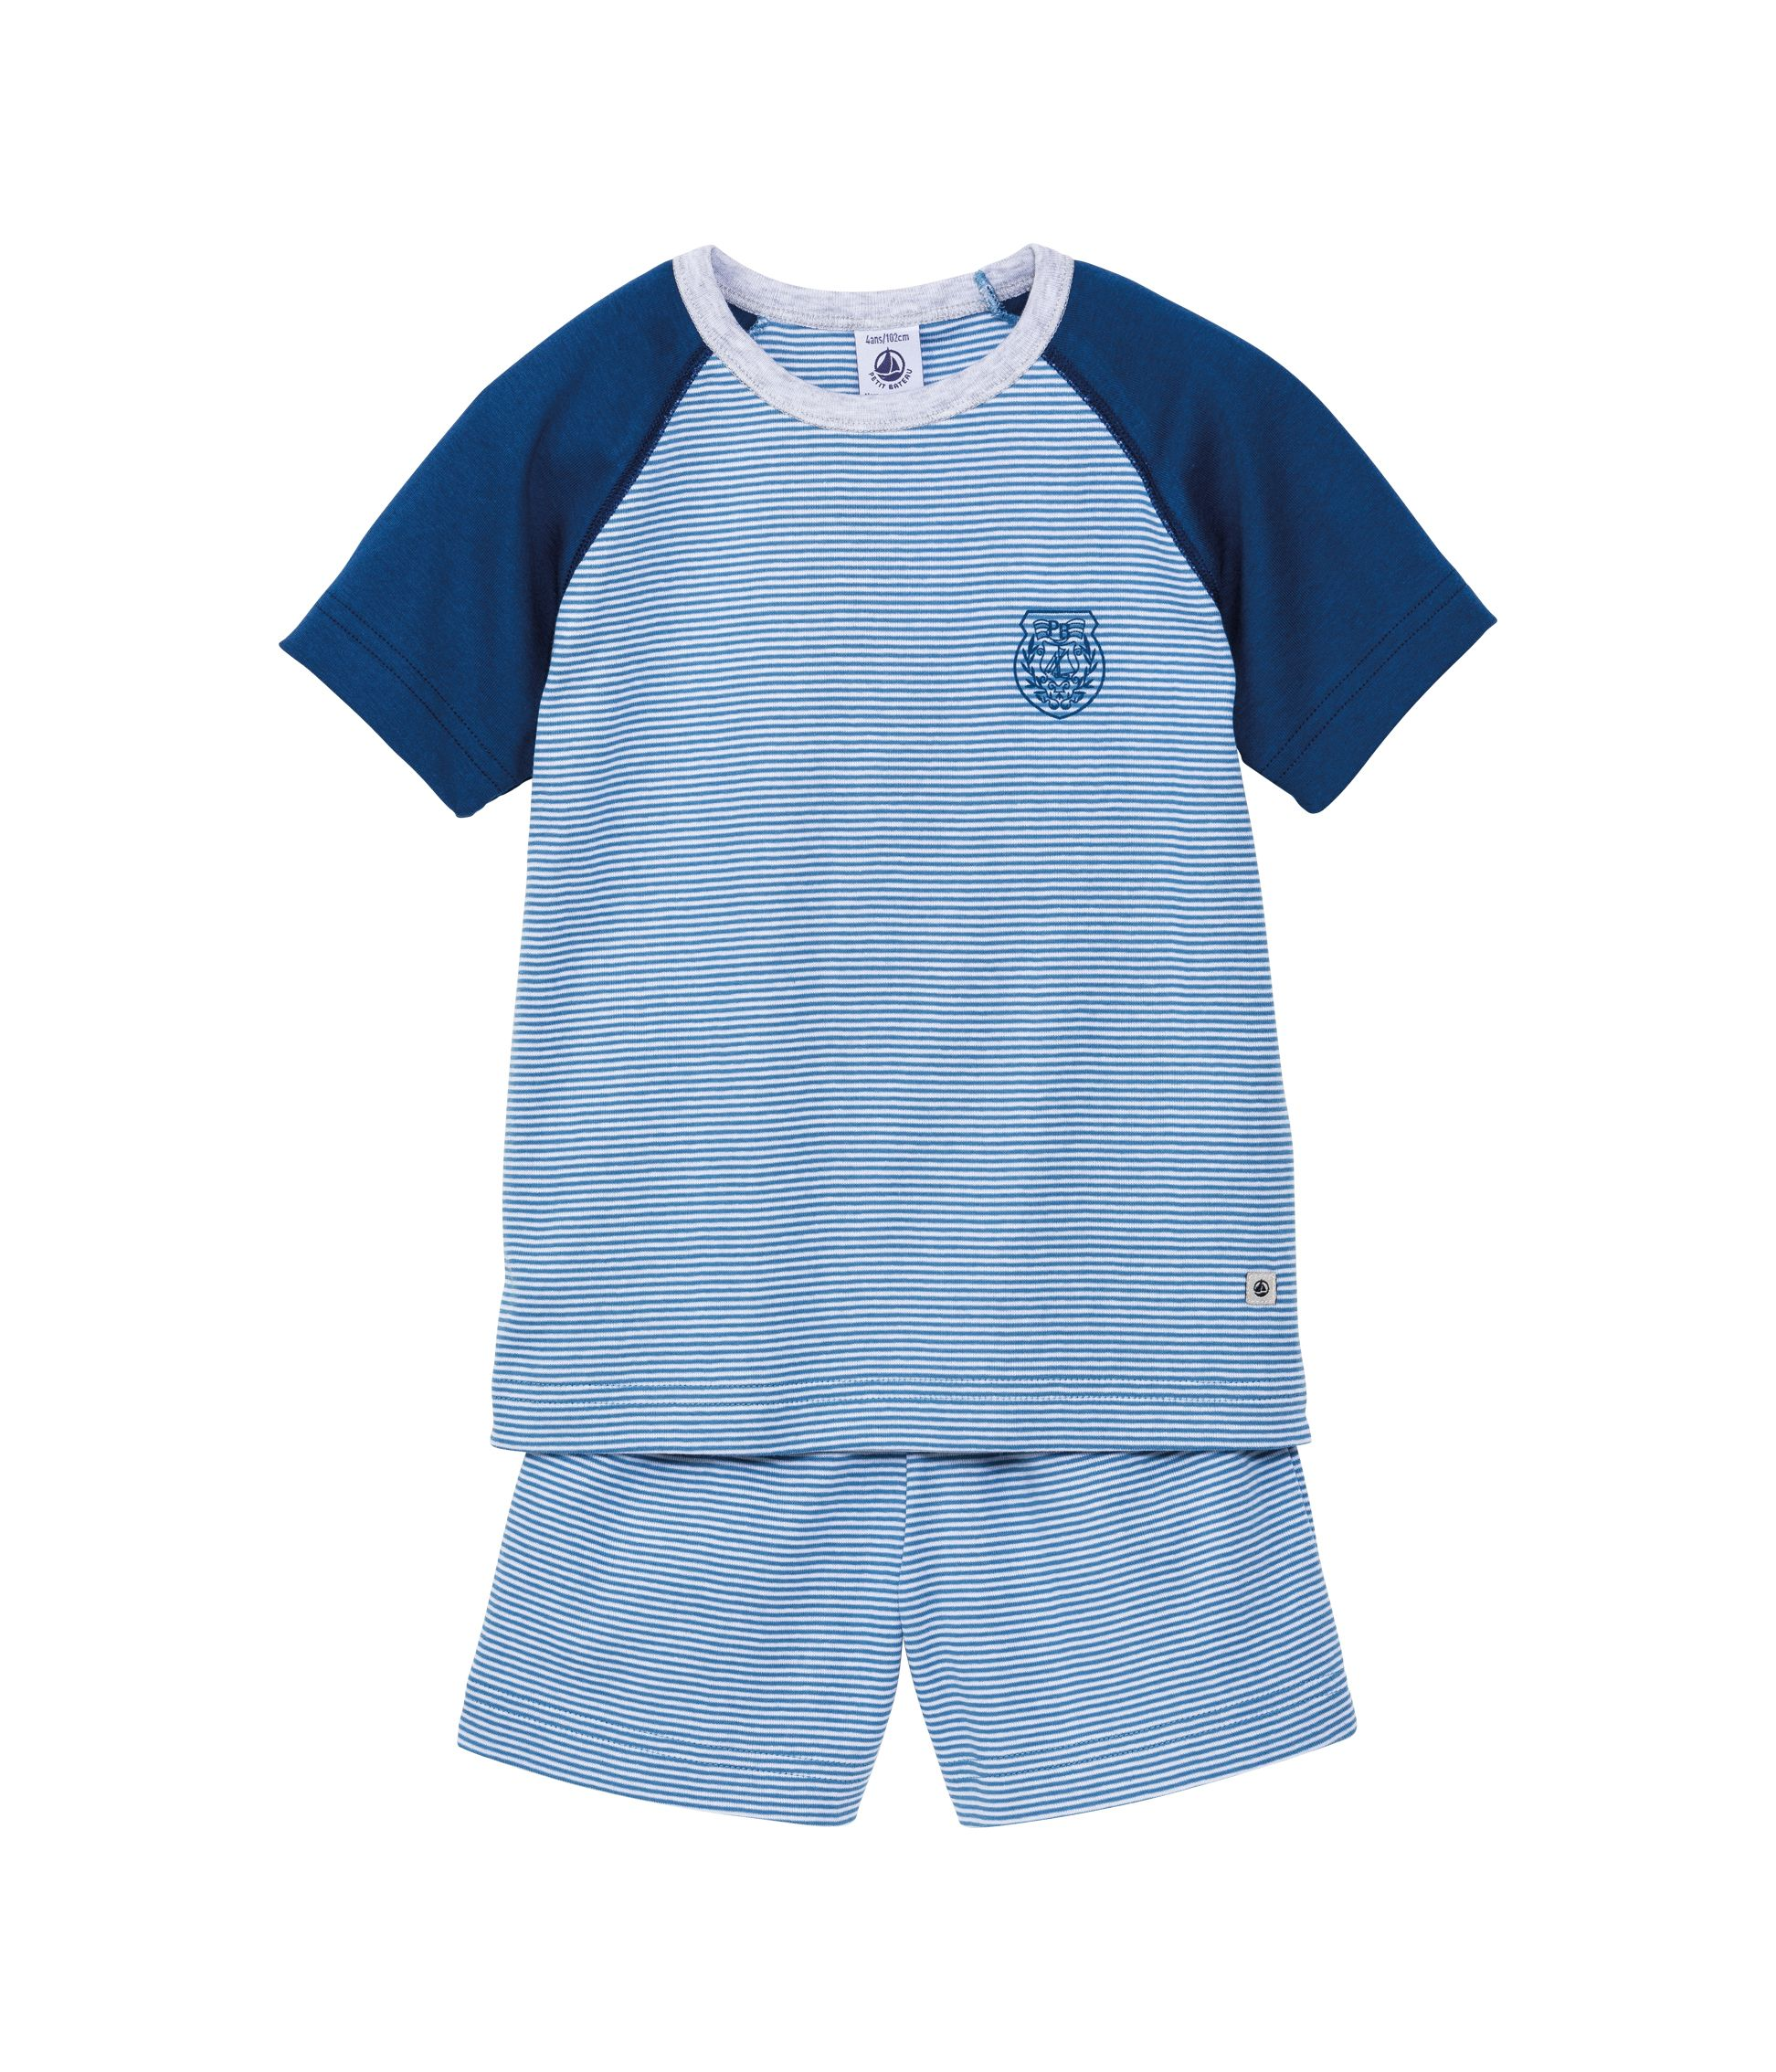 Boys milleraies short pyjama